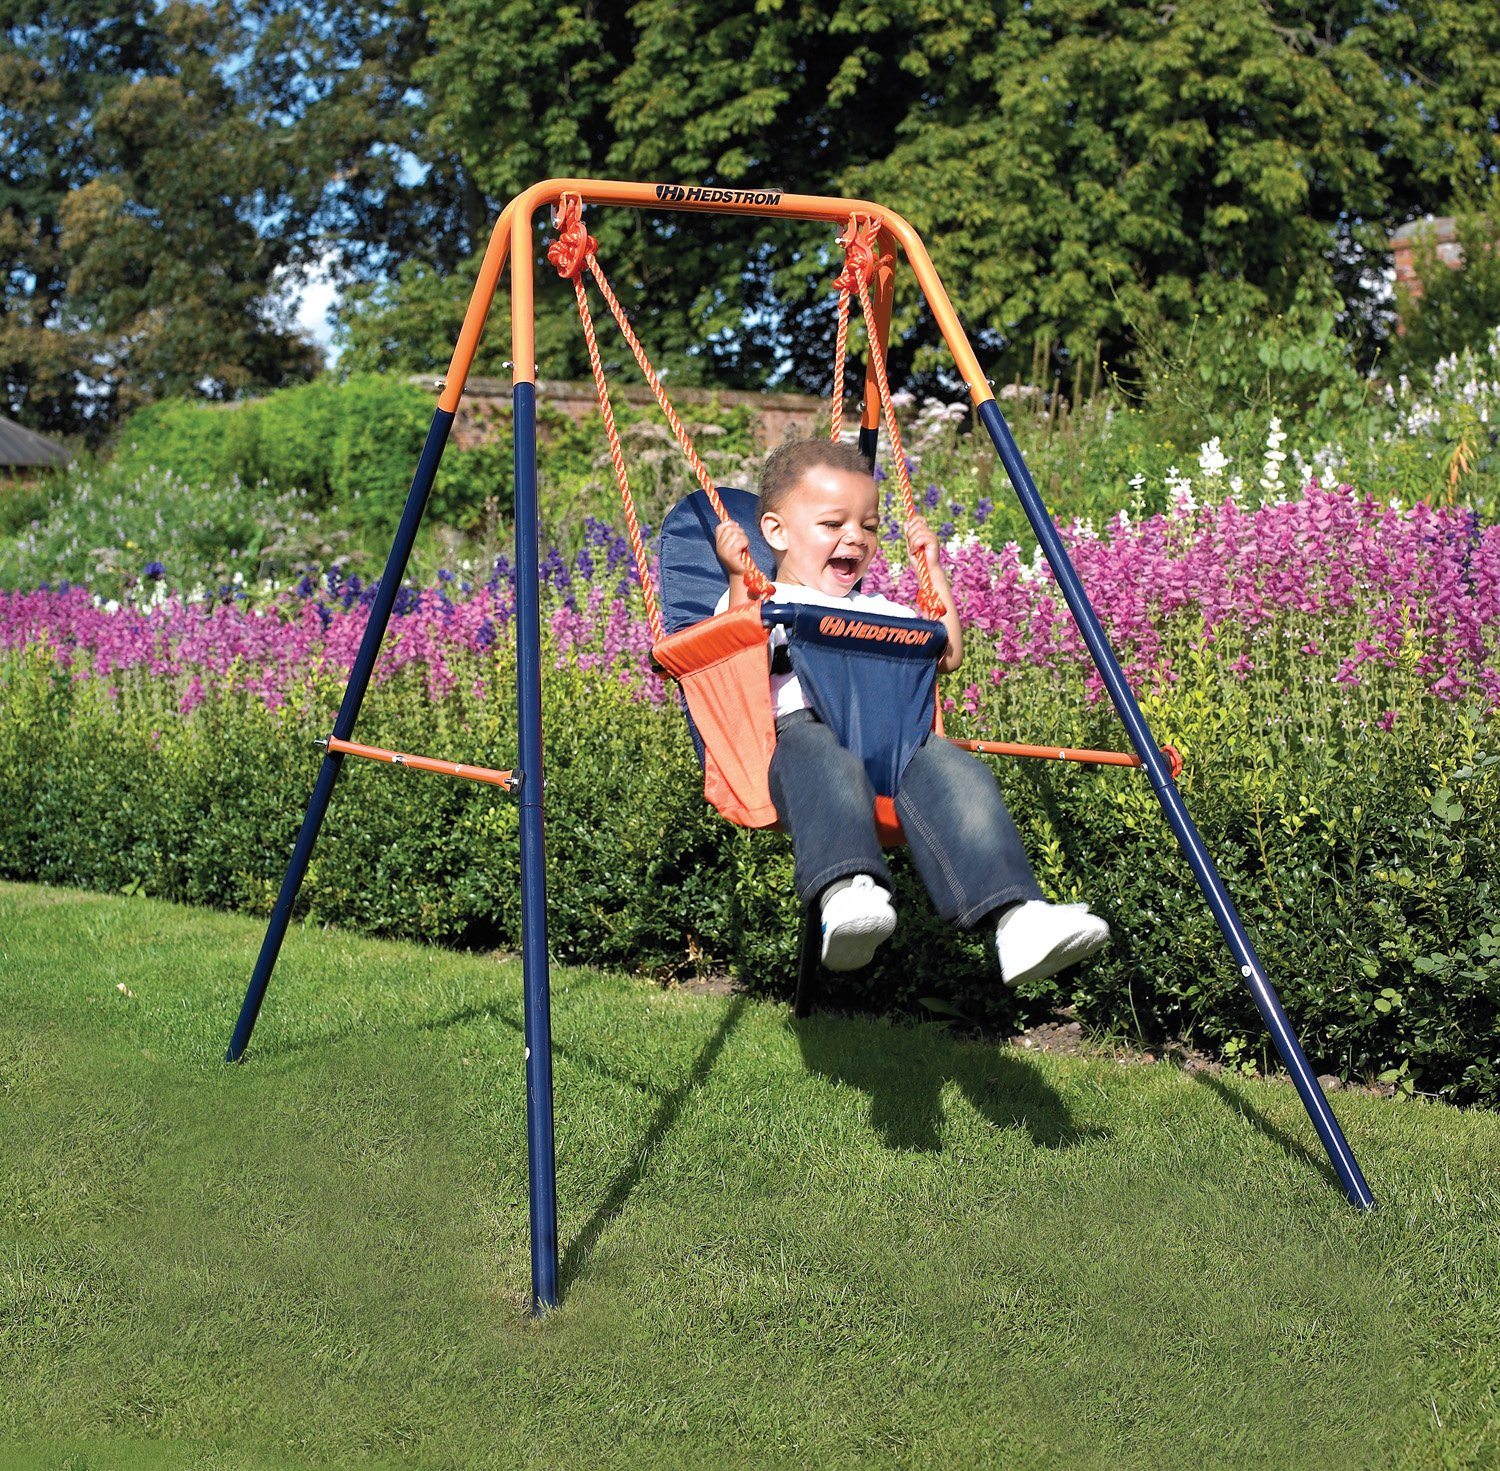 Hedstrom Folding Toddler Swing Amazon Toys & Games